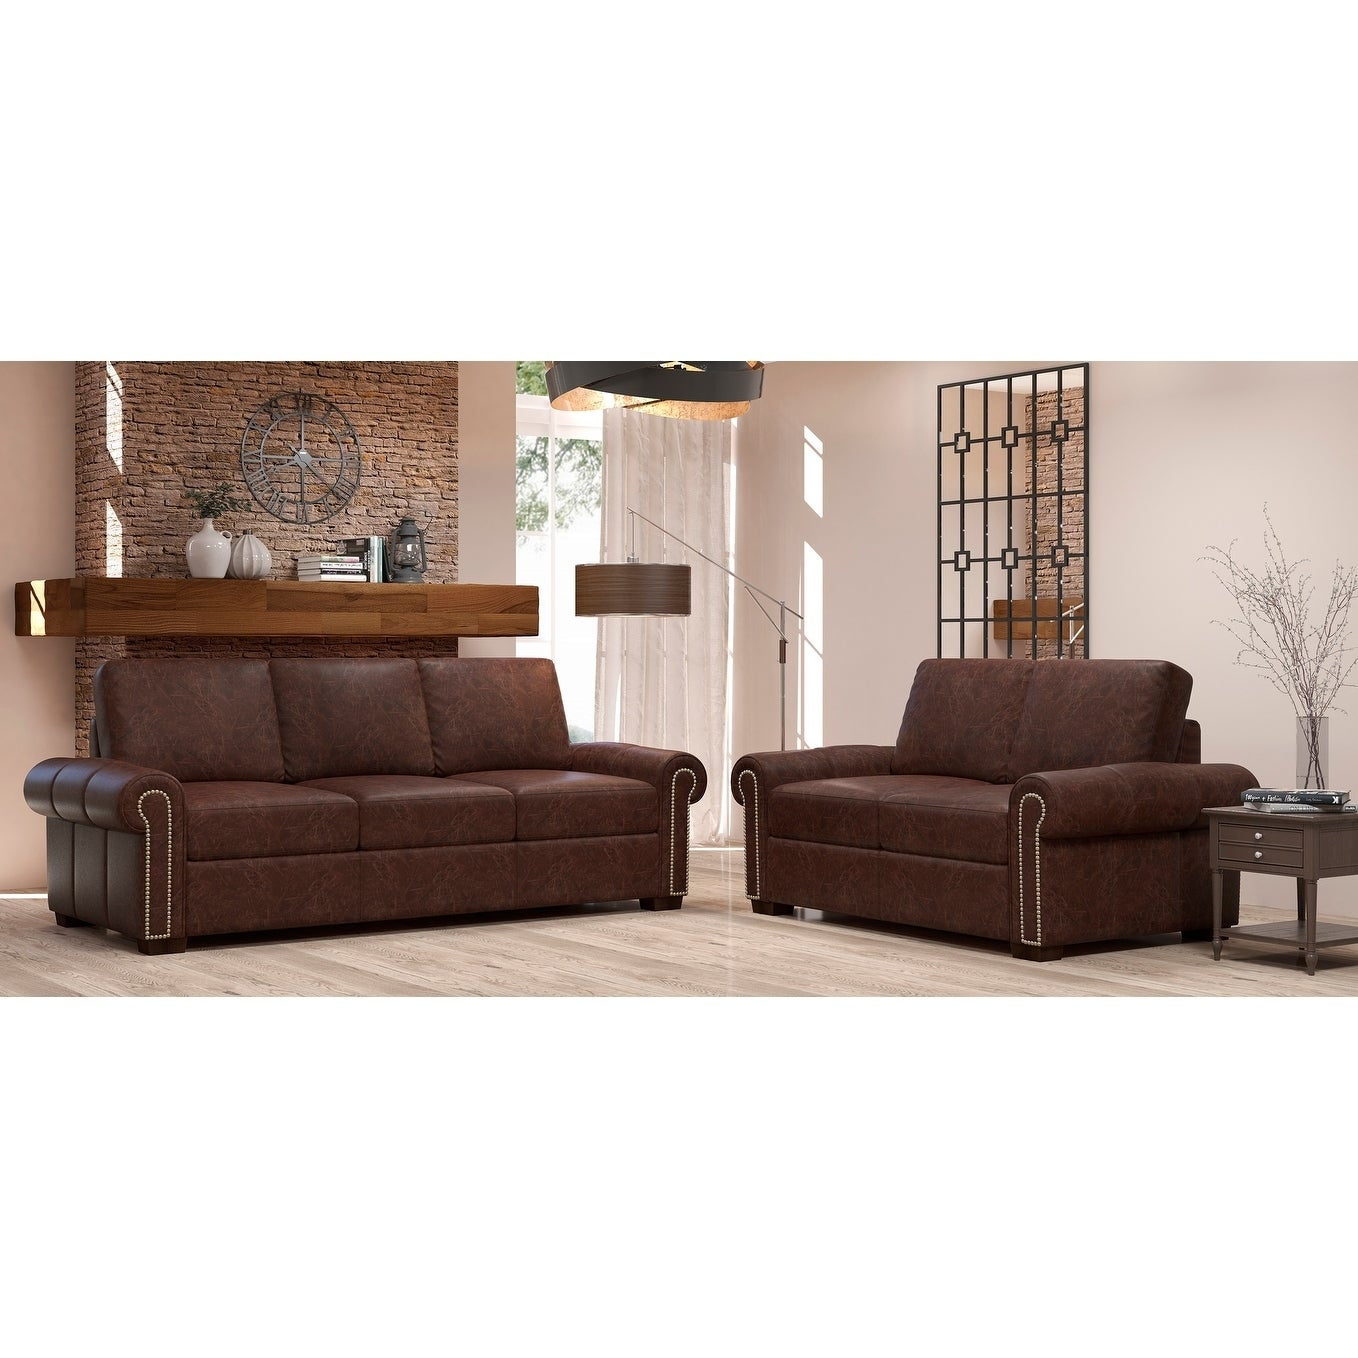 Awe Inspiring Made To Order Colchester 100 Top Grain Leather Sofa And Loveseat Set Cjindustries Chair Design For Home Cjindustriesco